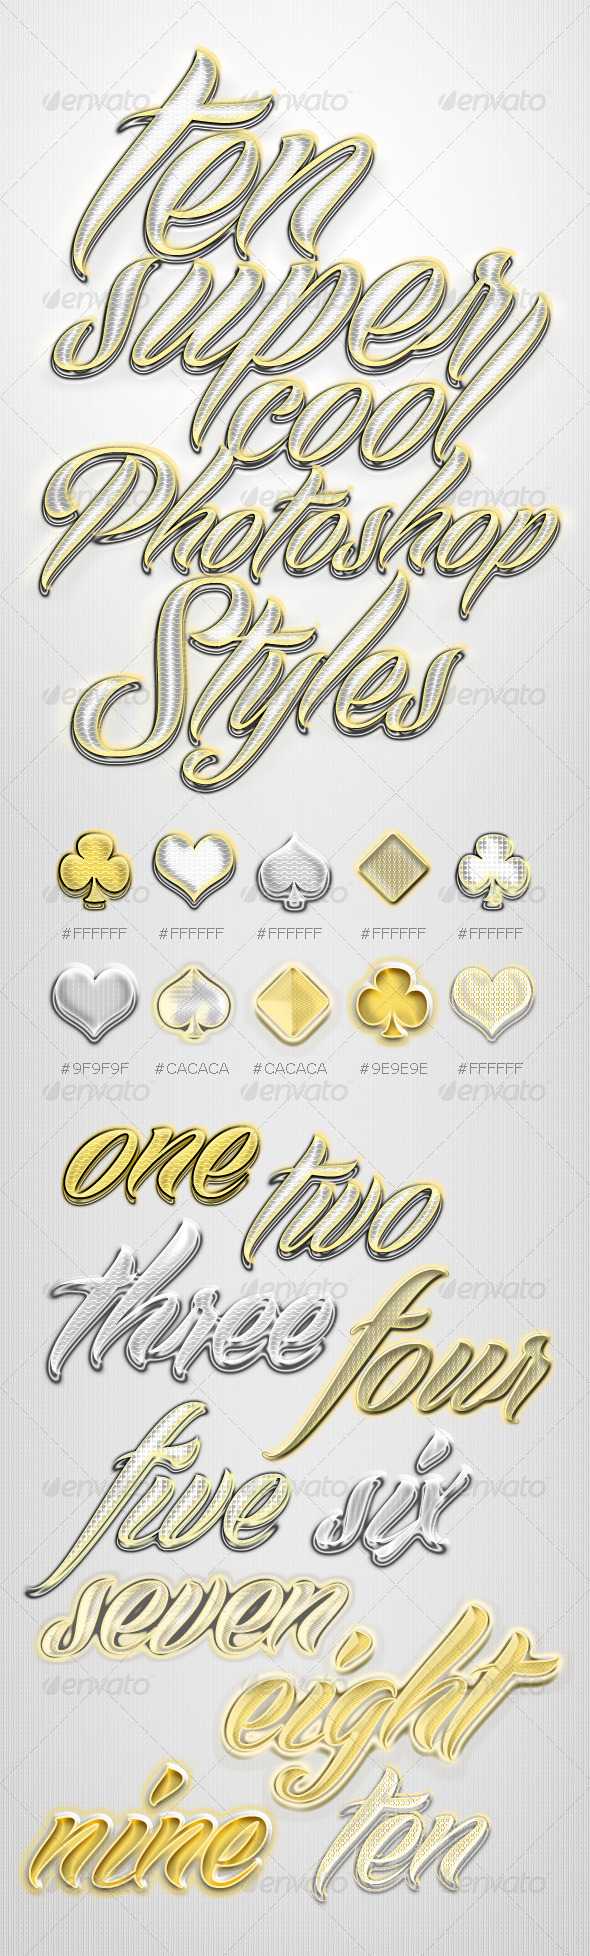 GraphicRiver Gold & Silver Shiny Layer Styles 4574250